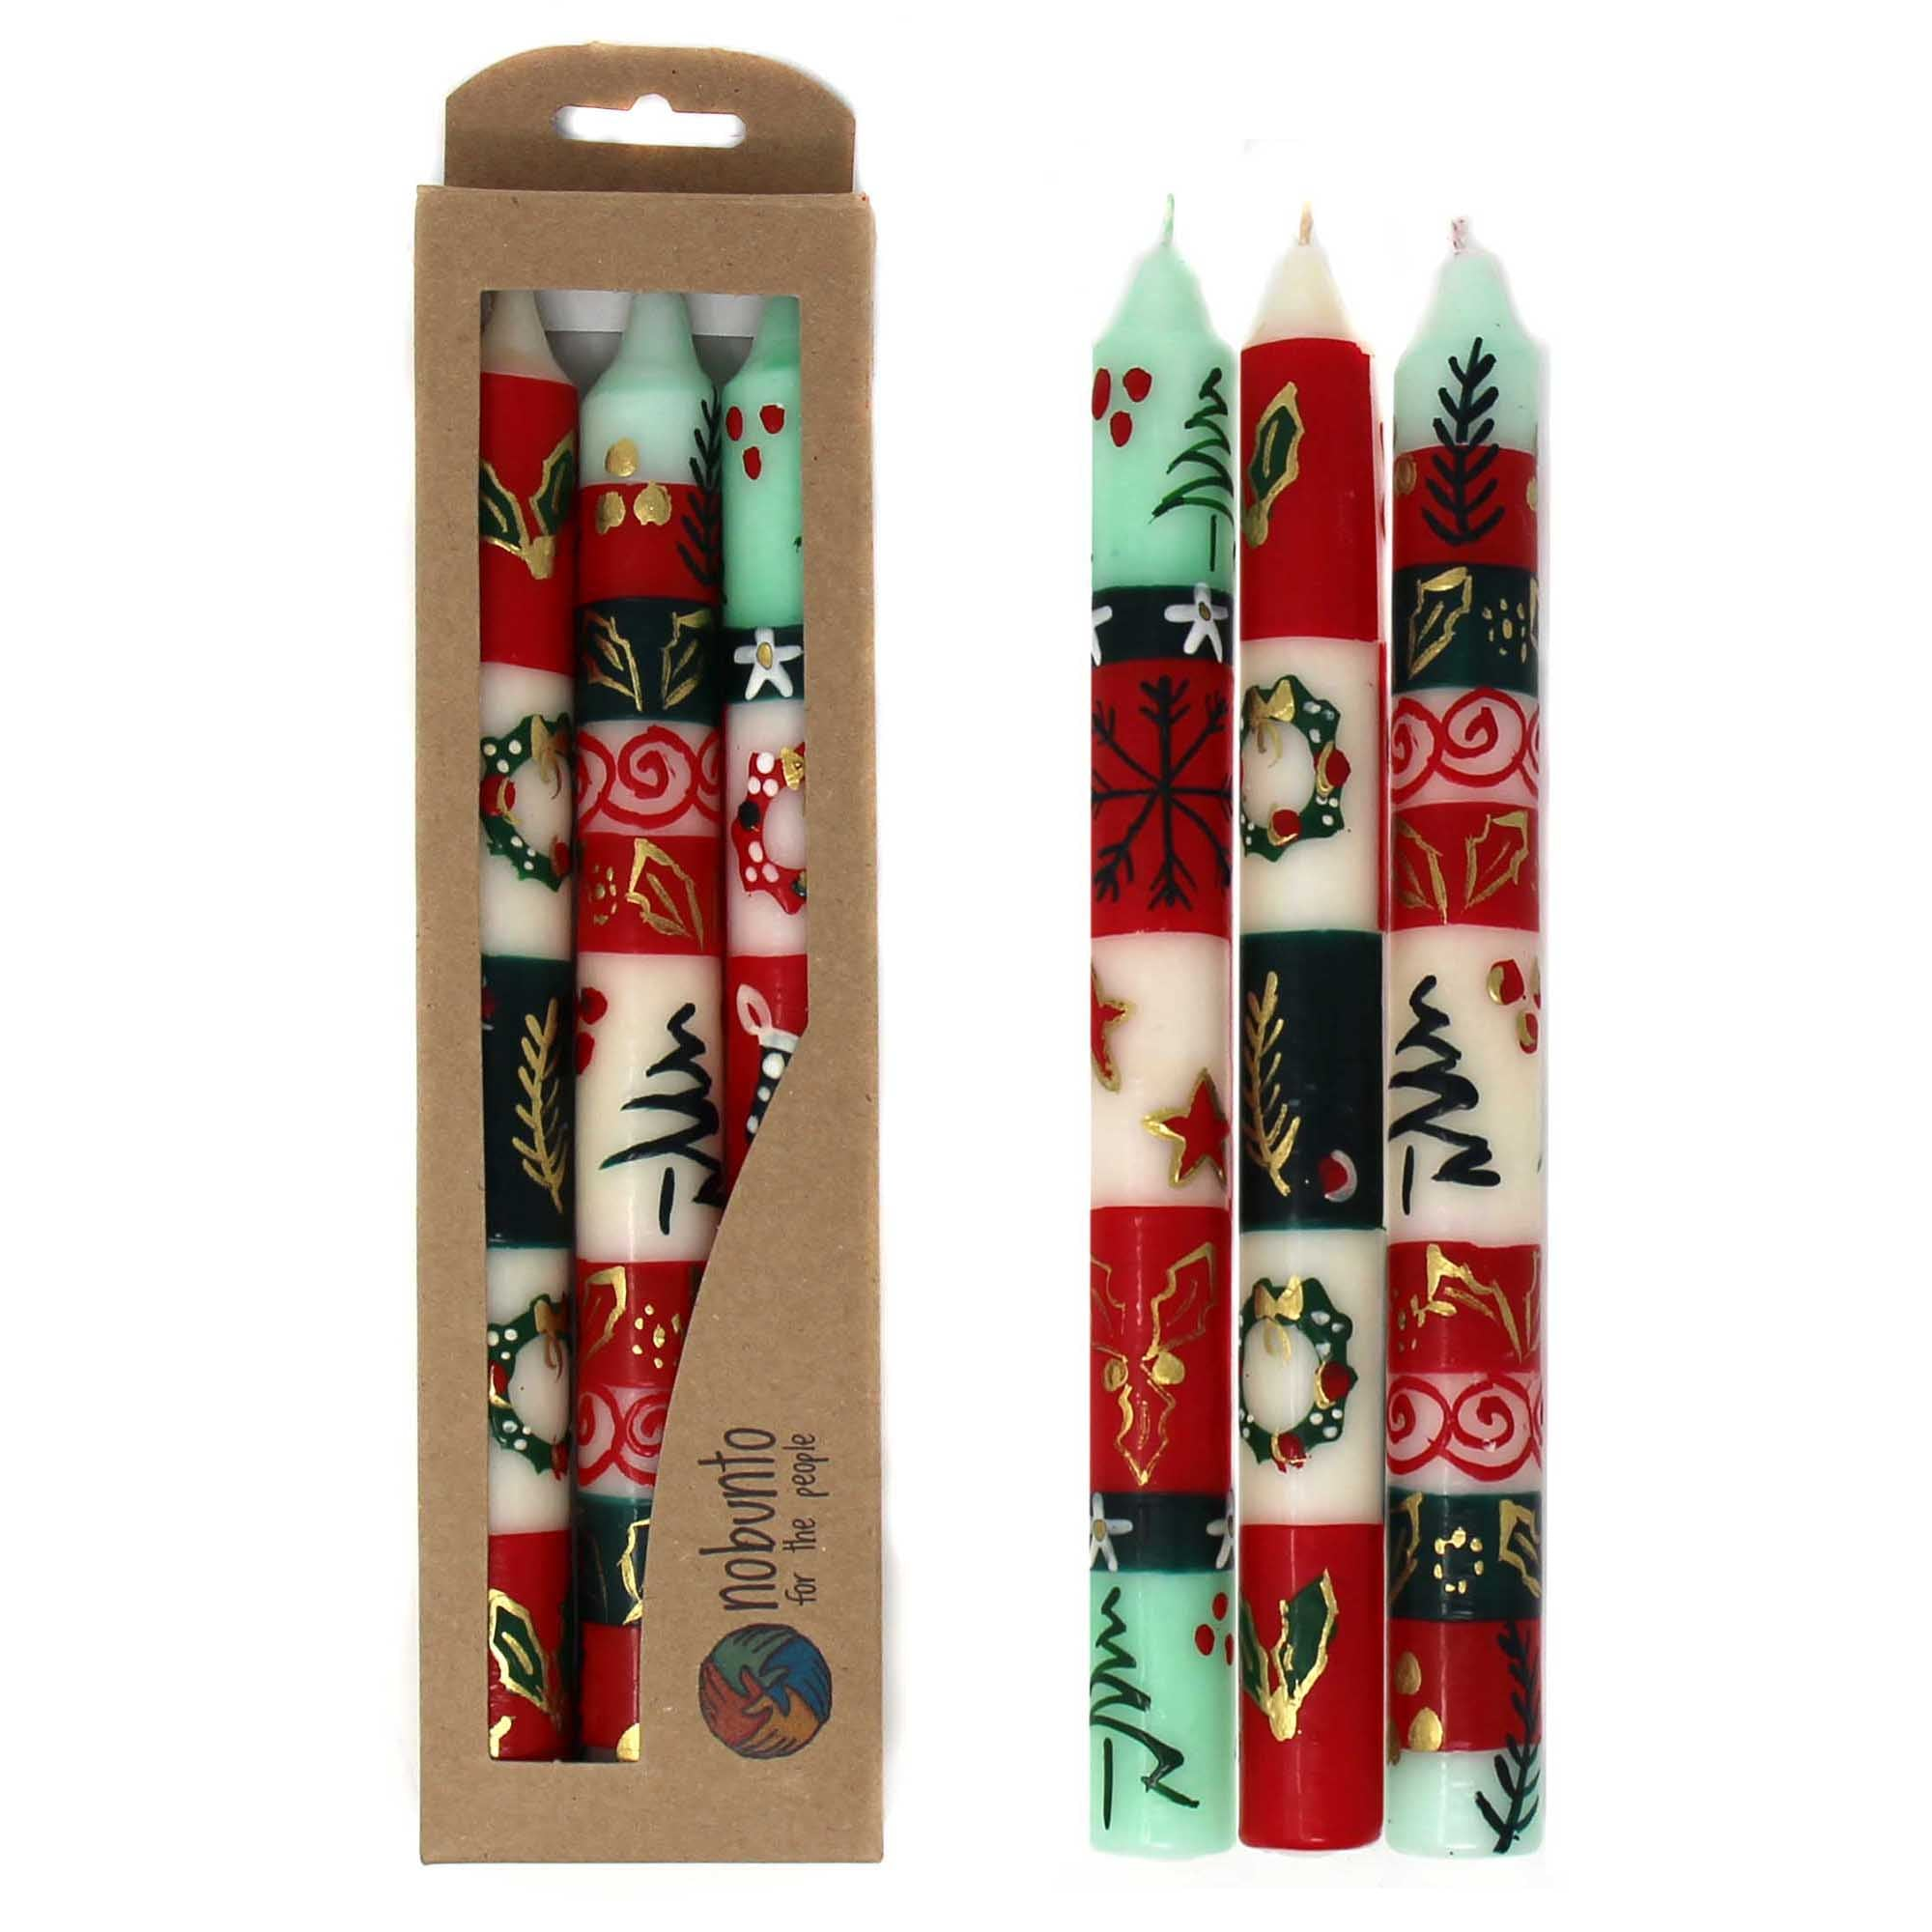 Set of Three Boxed Tall Hand-Painted Candles - Ukhisimui Design